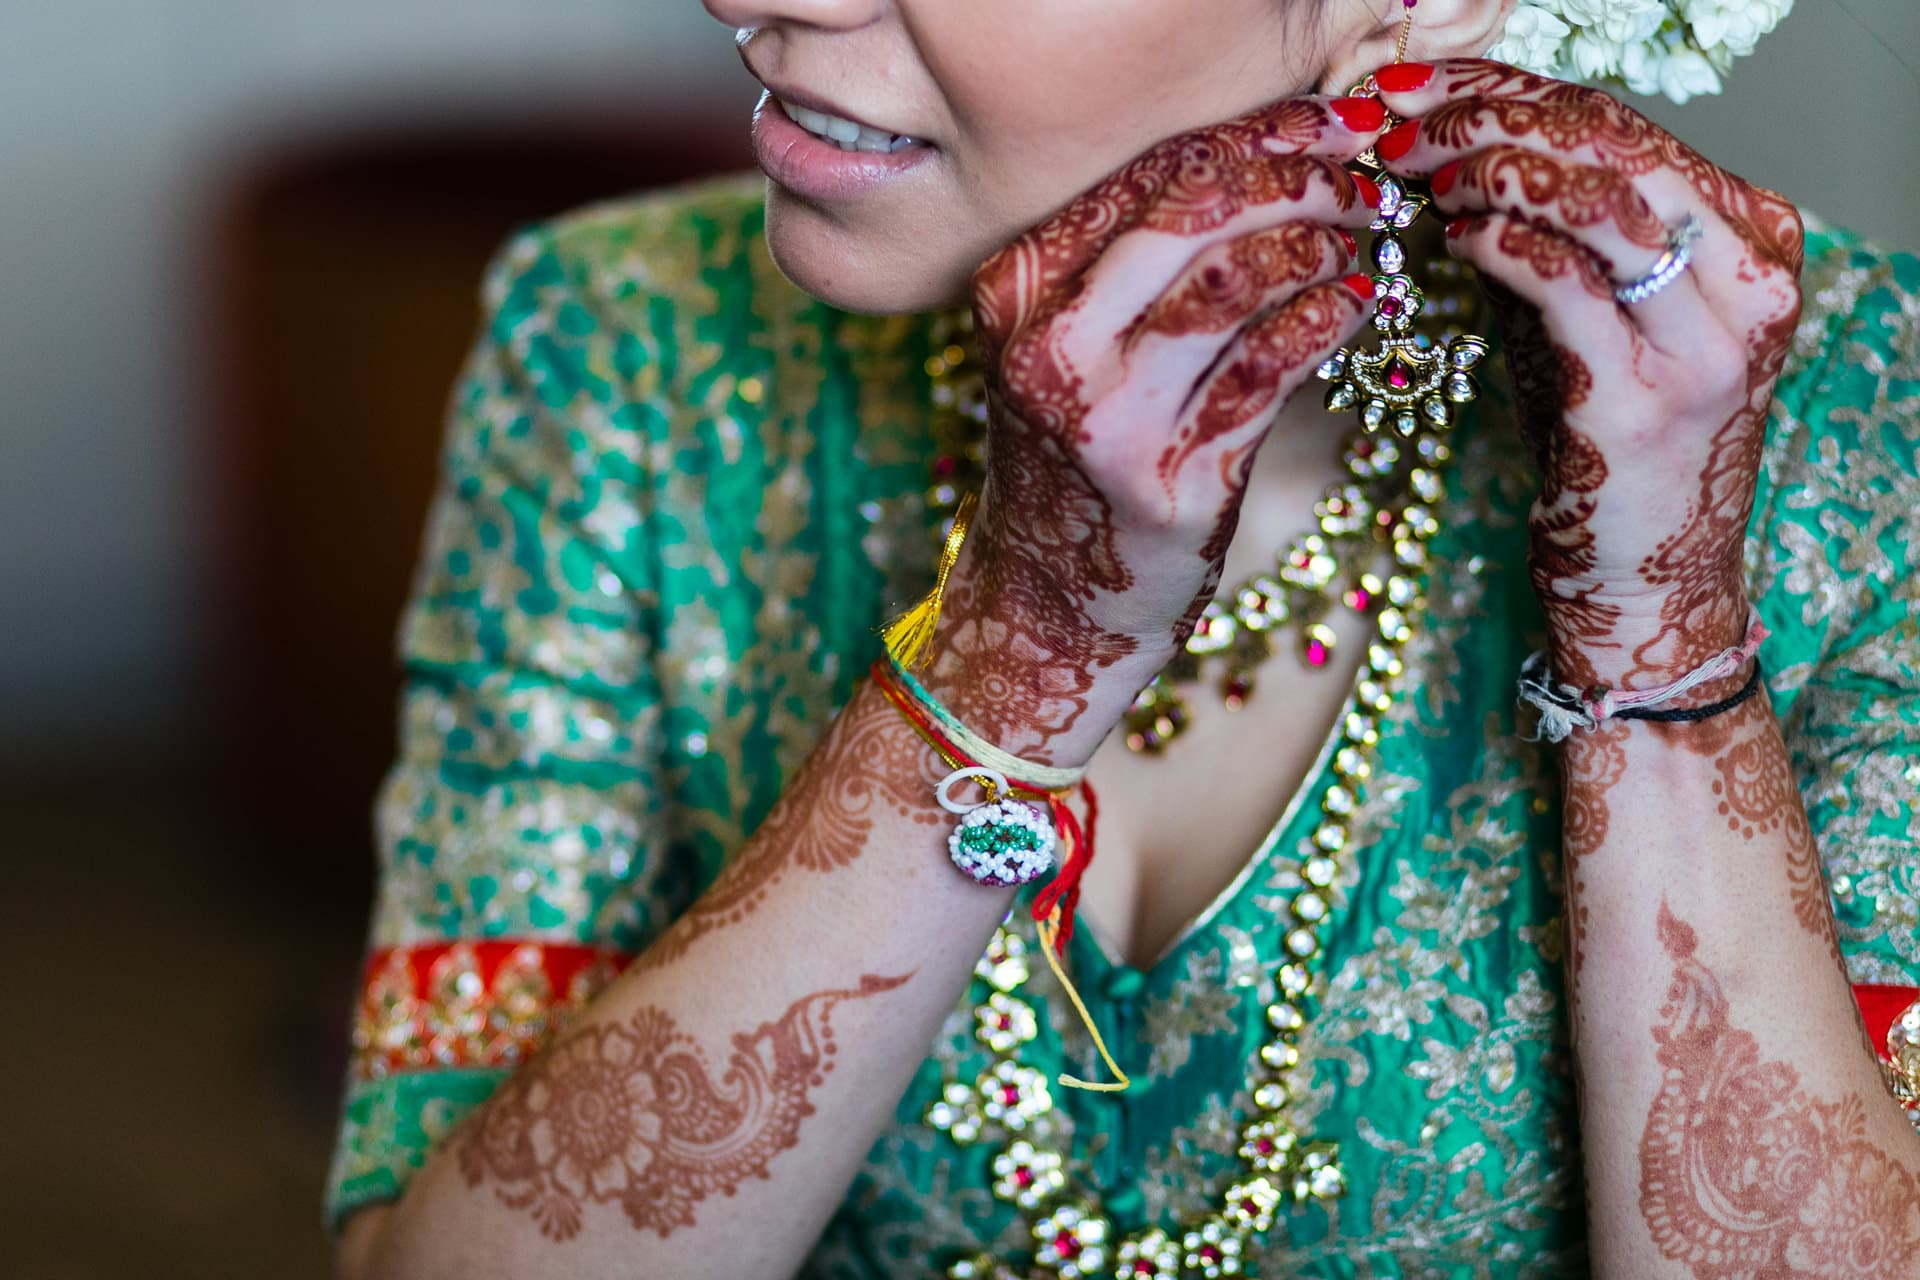 Asian bride putting earrings on